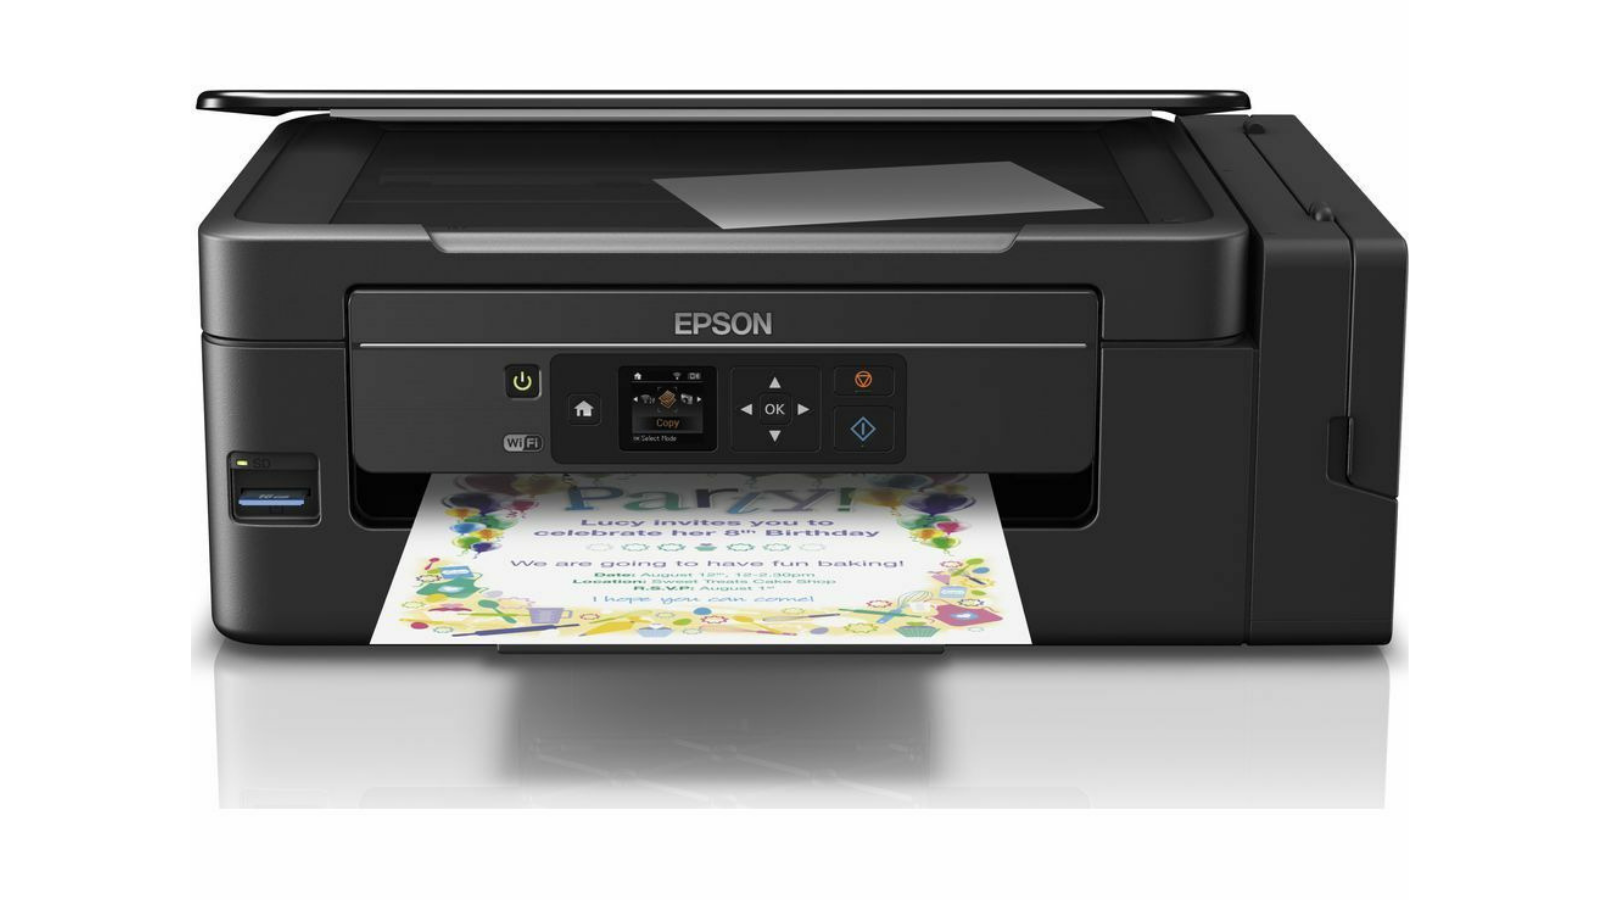 Best printer deals this September: Score a cheap inkjet or